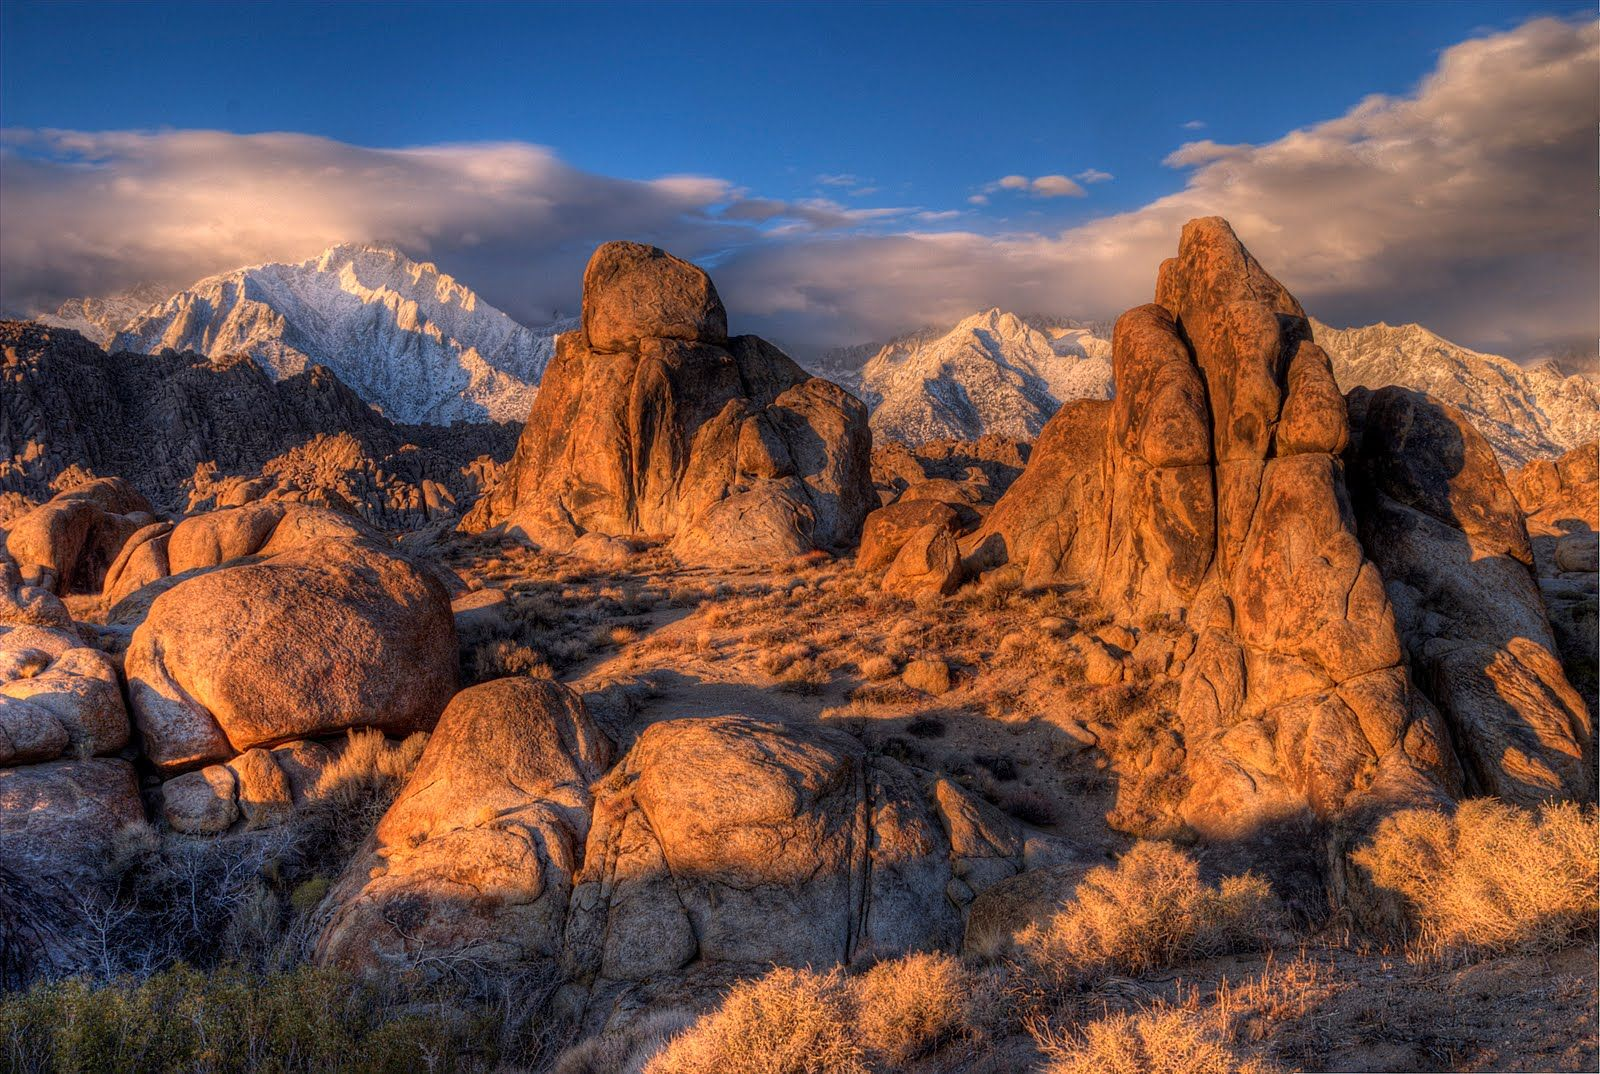 Alabama Hills - Lone Pine, CA Went here with my dad and the horses.. One of the most AMAZING places I've ever been!! Who knew?